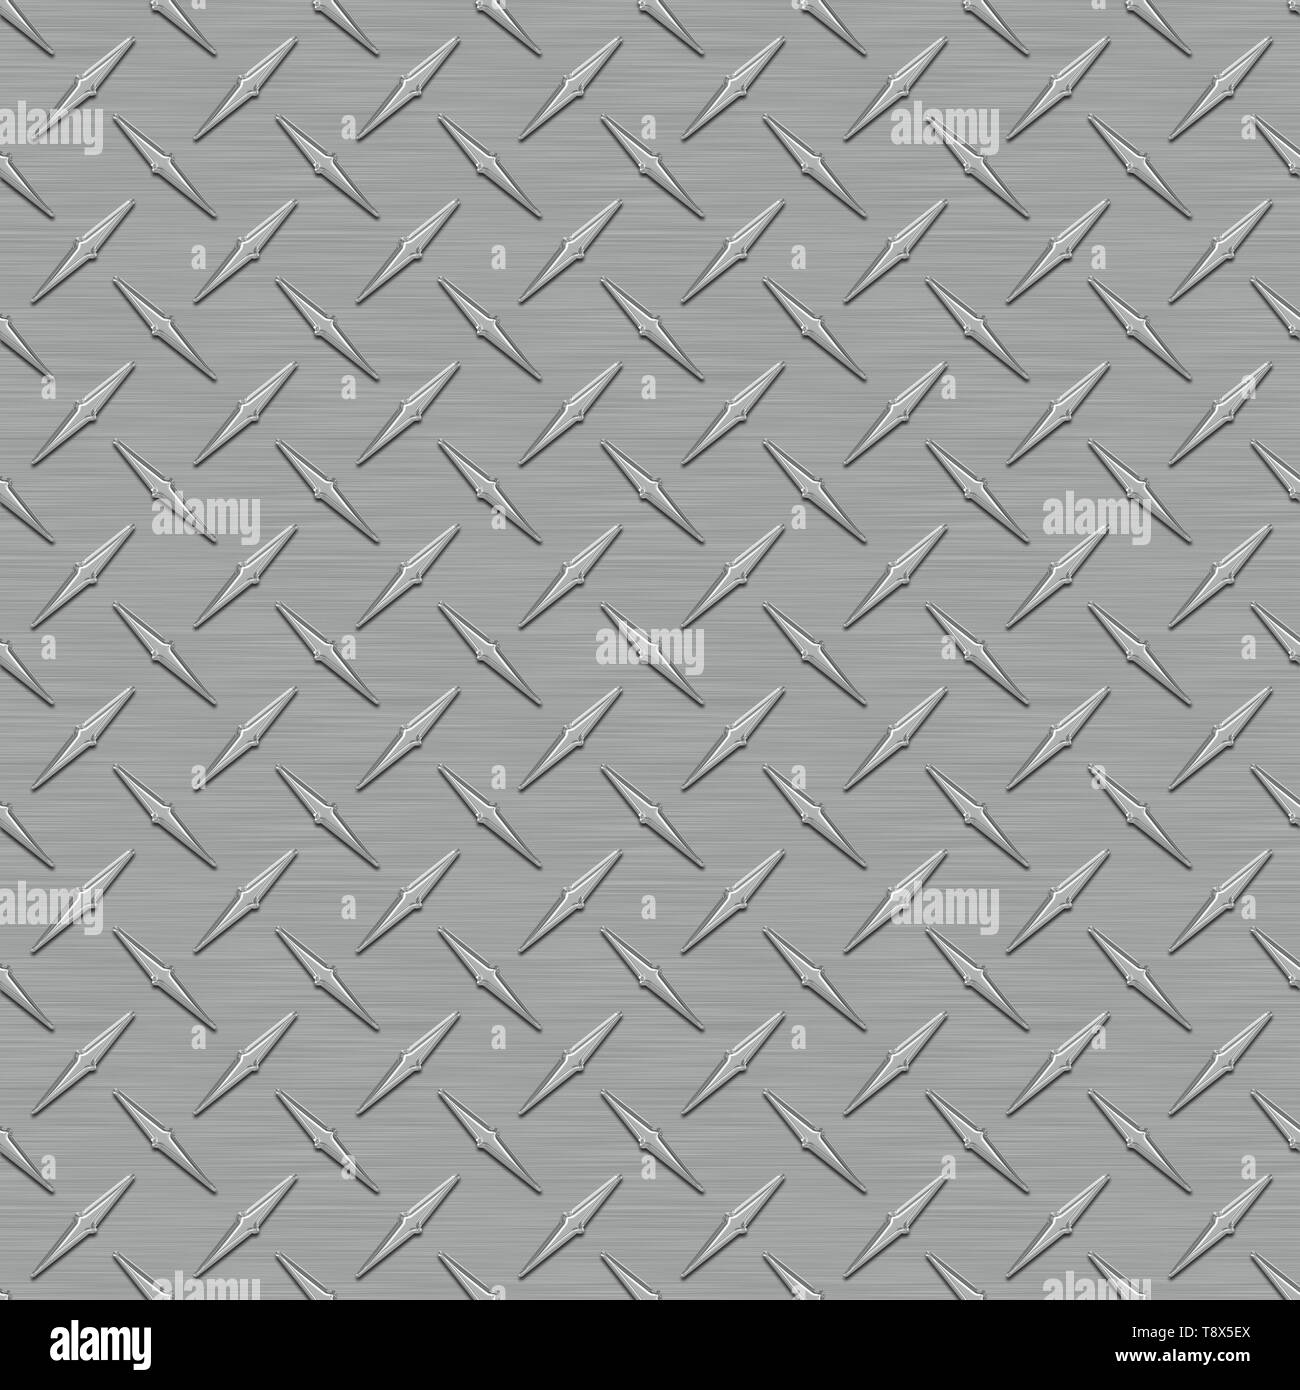 Dark Gray Diamond Plate Metal Seamless Texture Tile - Stock Image